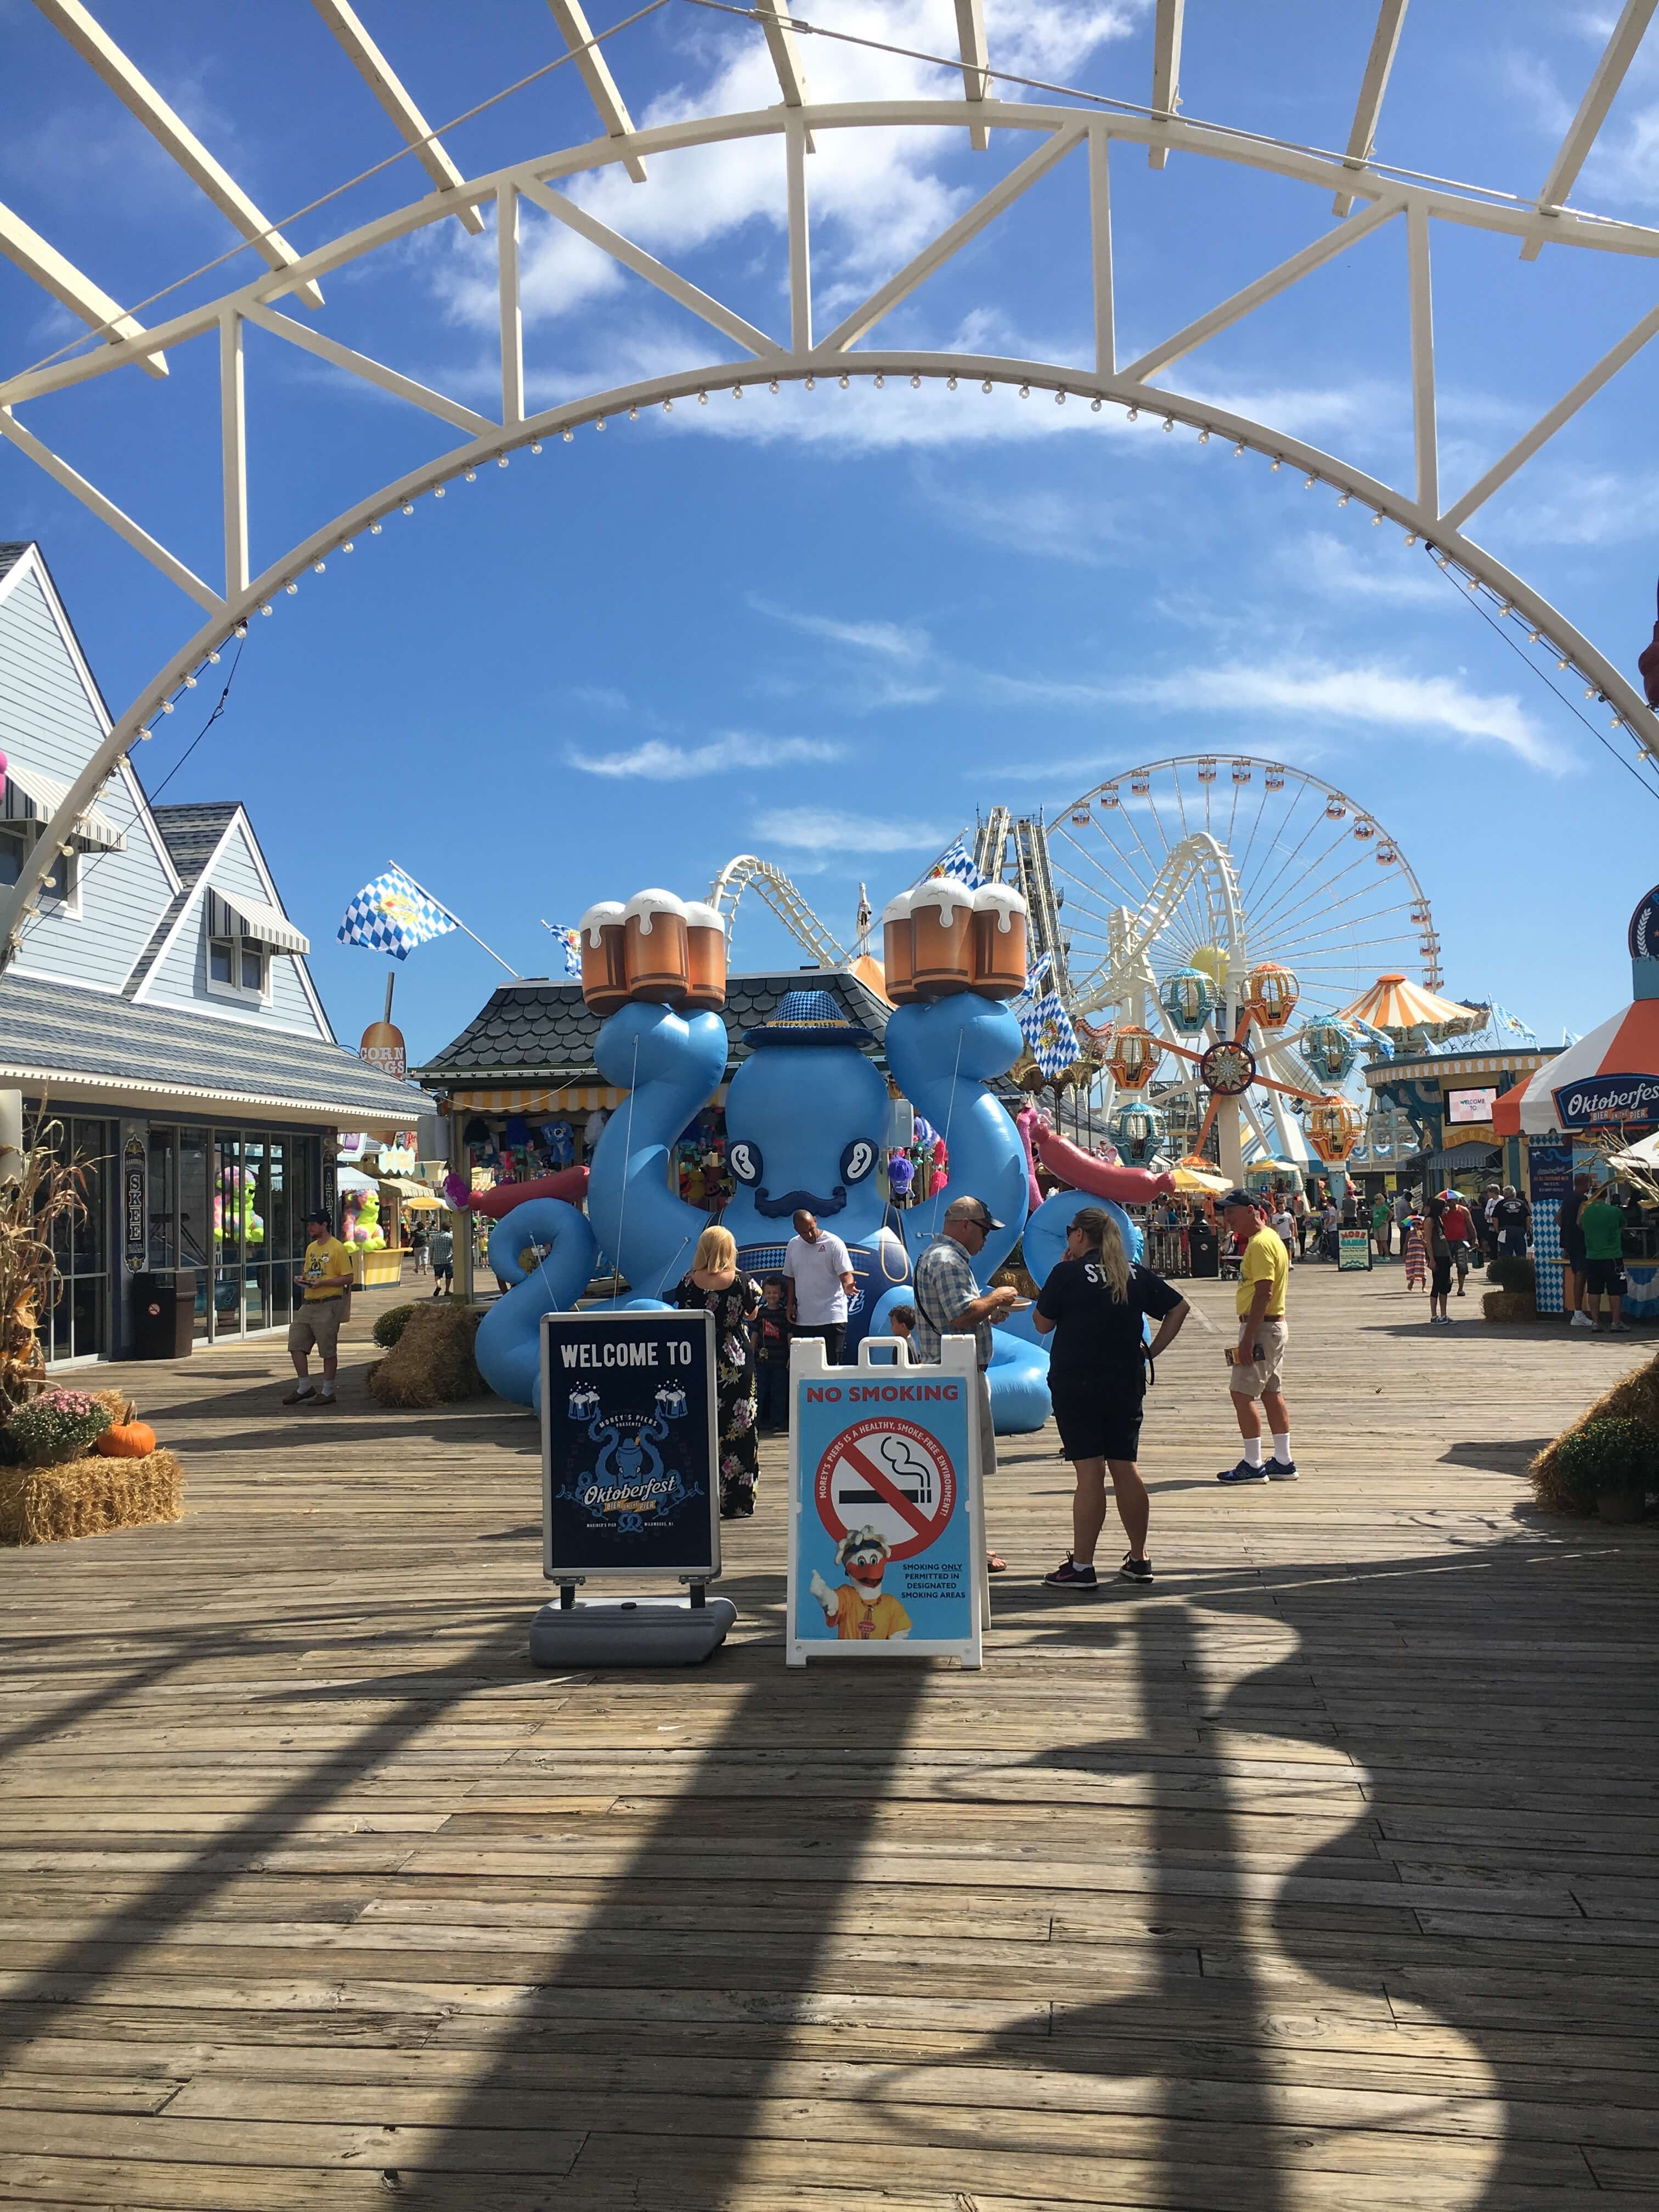 fall fun for kids morey's piers in new jersey